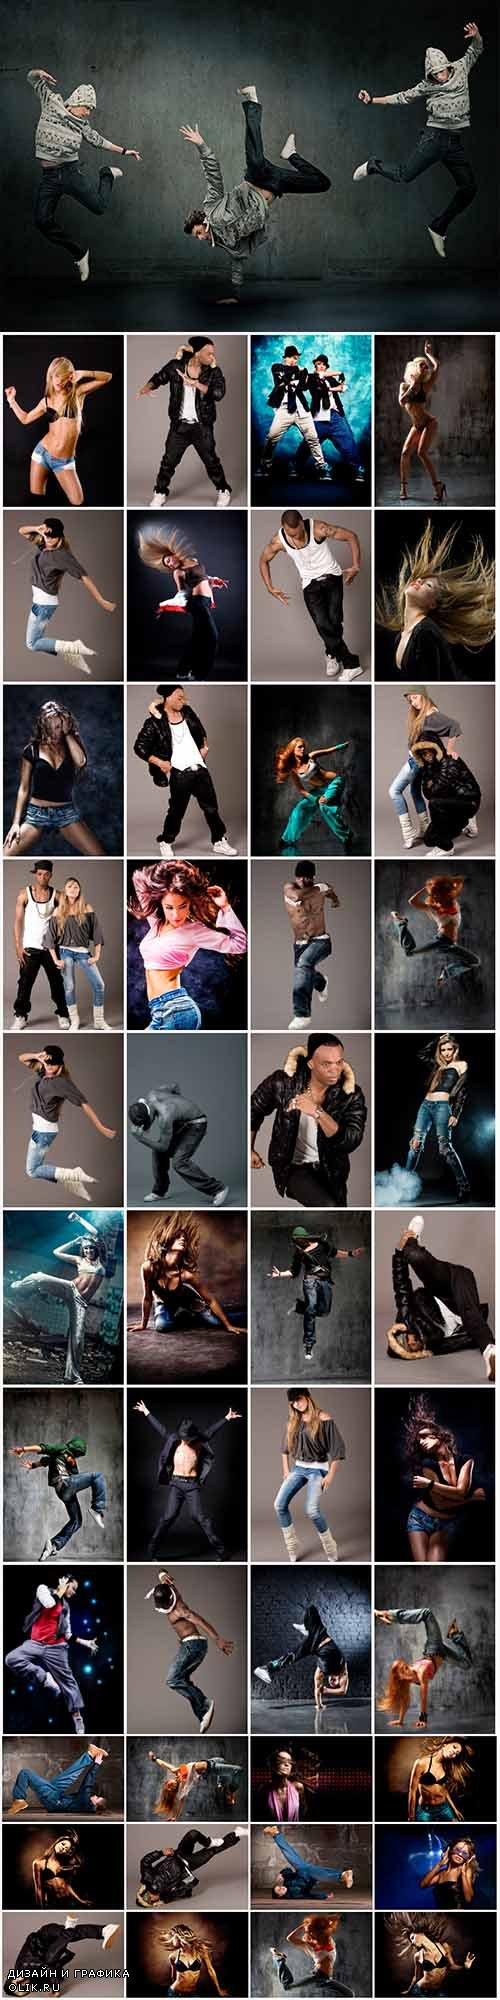 100 dancing people photo